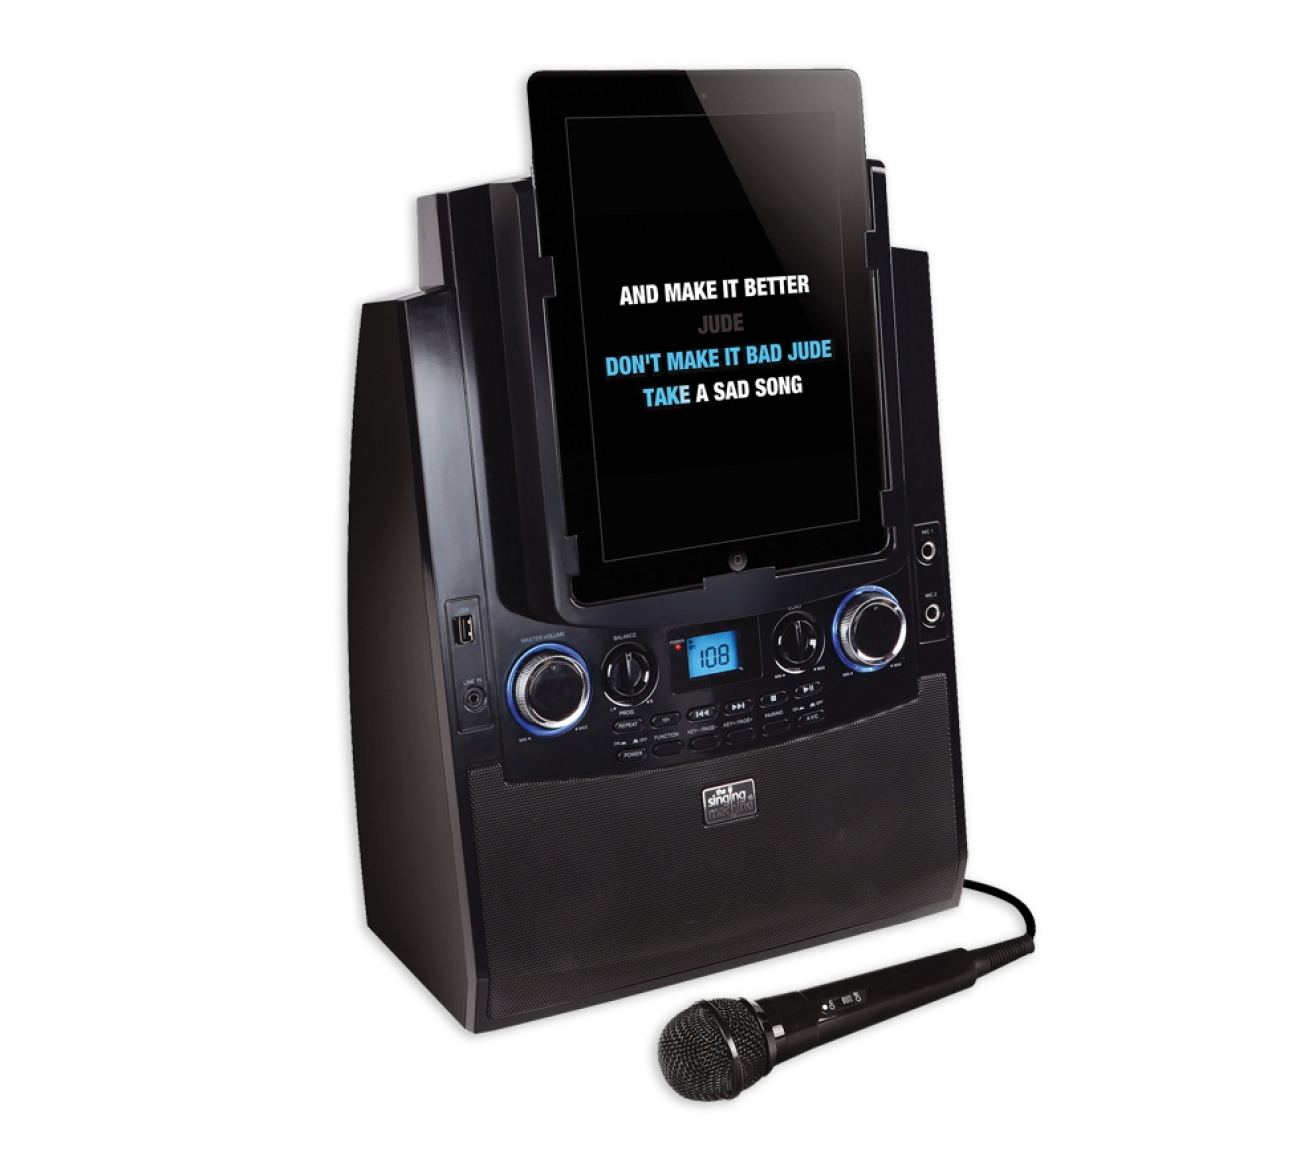 iOS Karaoke Machine